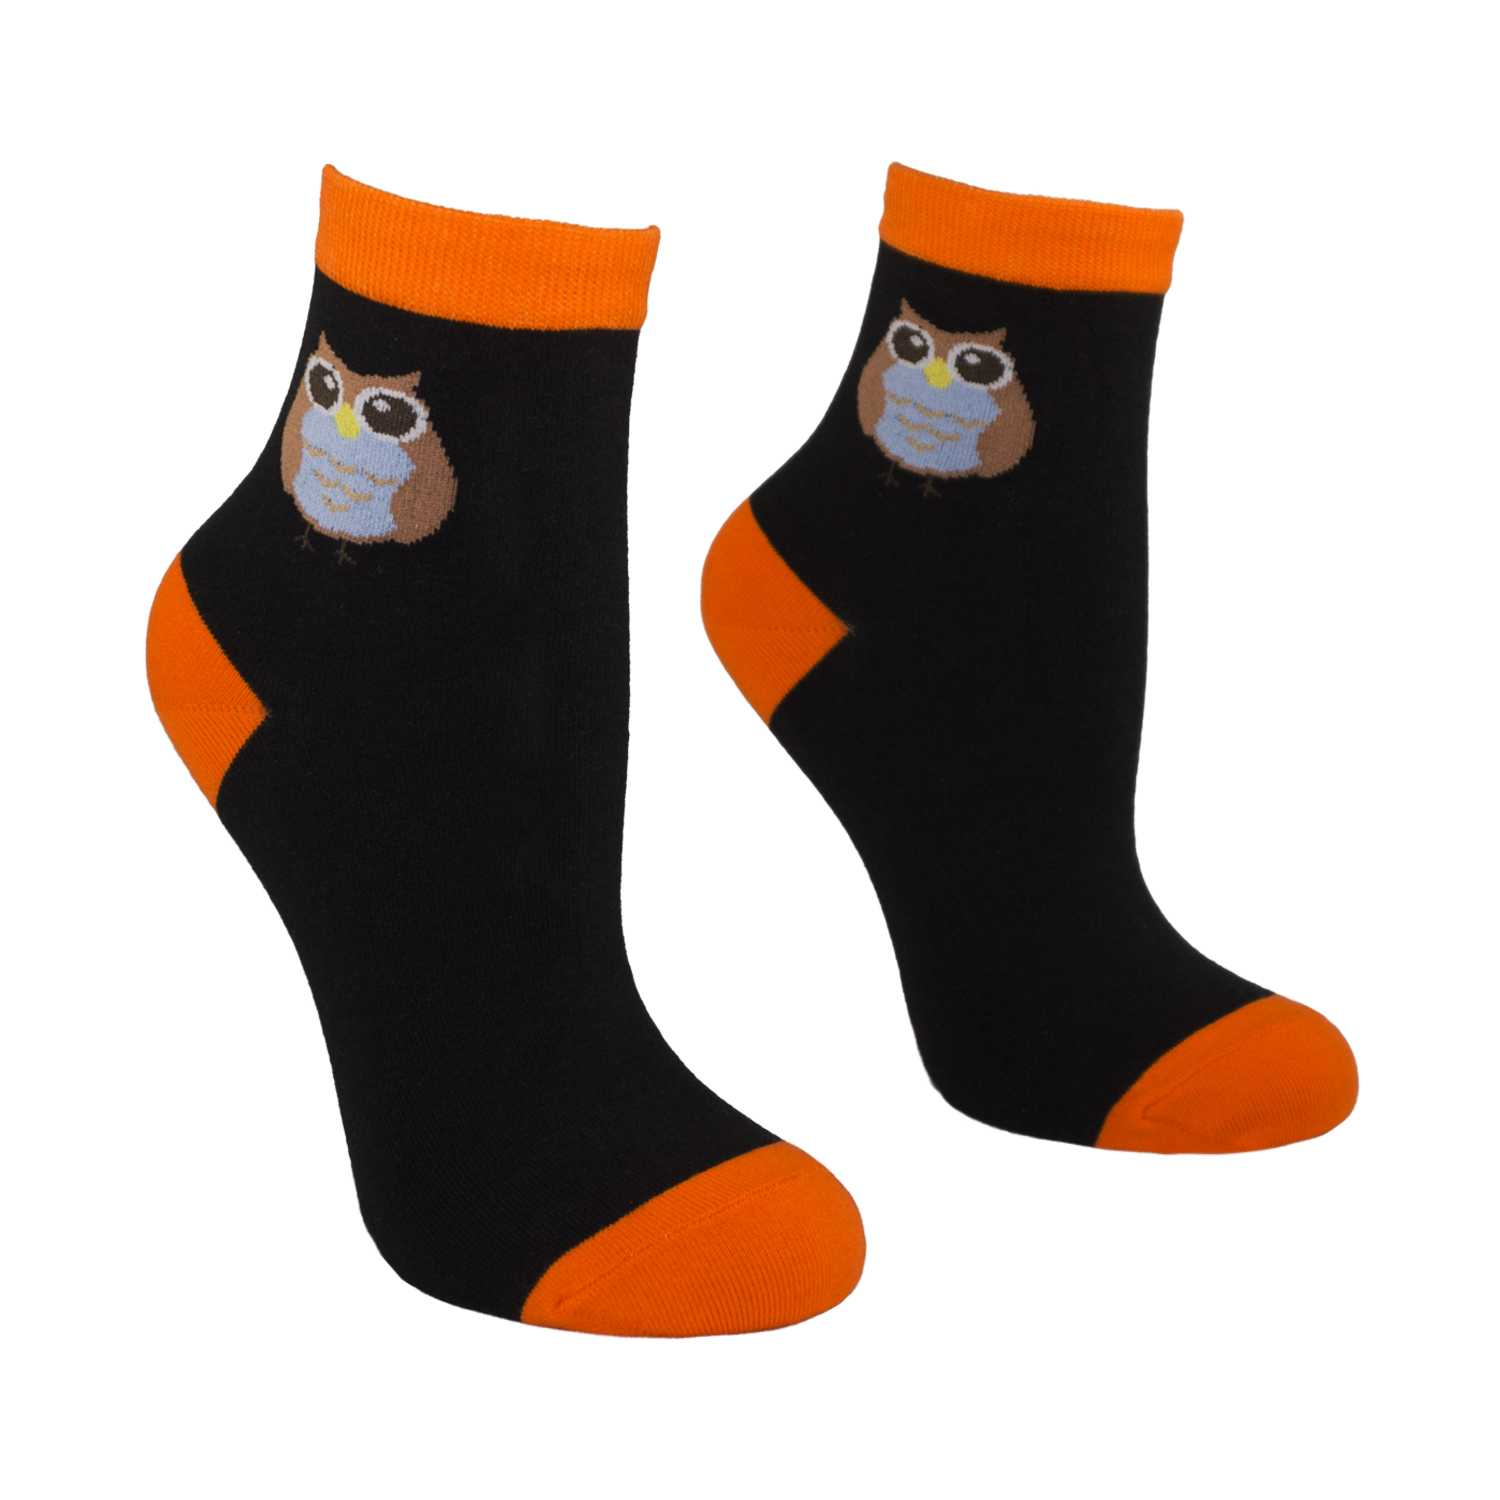 Women's Owl Design Crew Socks - Black - Zestique